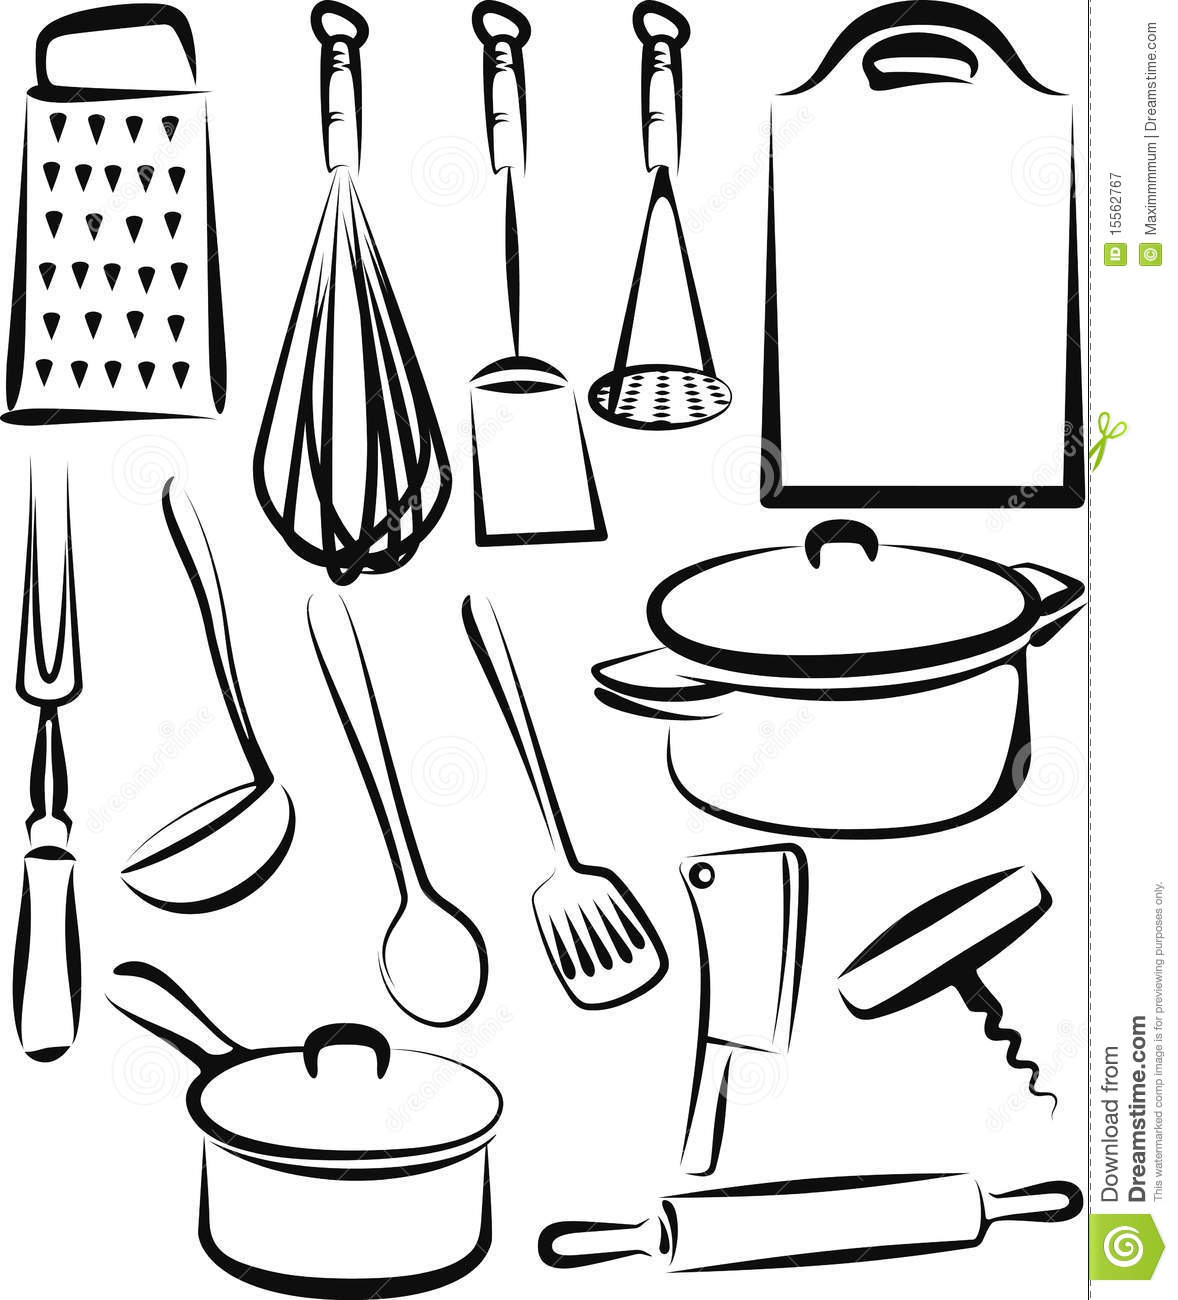 Kitchen utensil stock vector illustration of icon group 15562767 - Elenco utensili da cucina ...